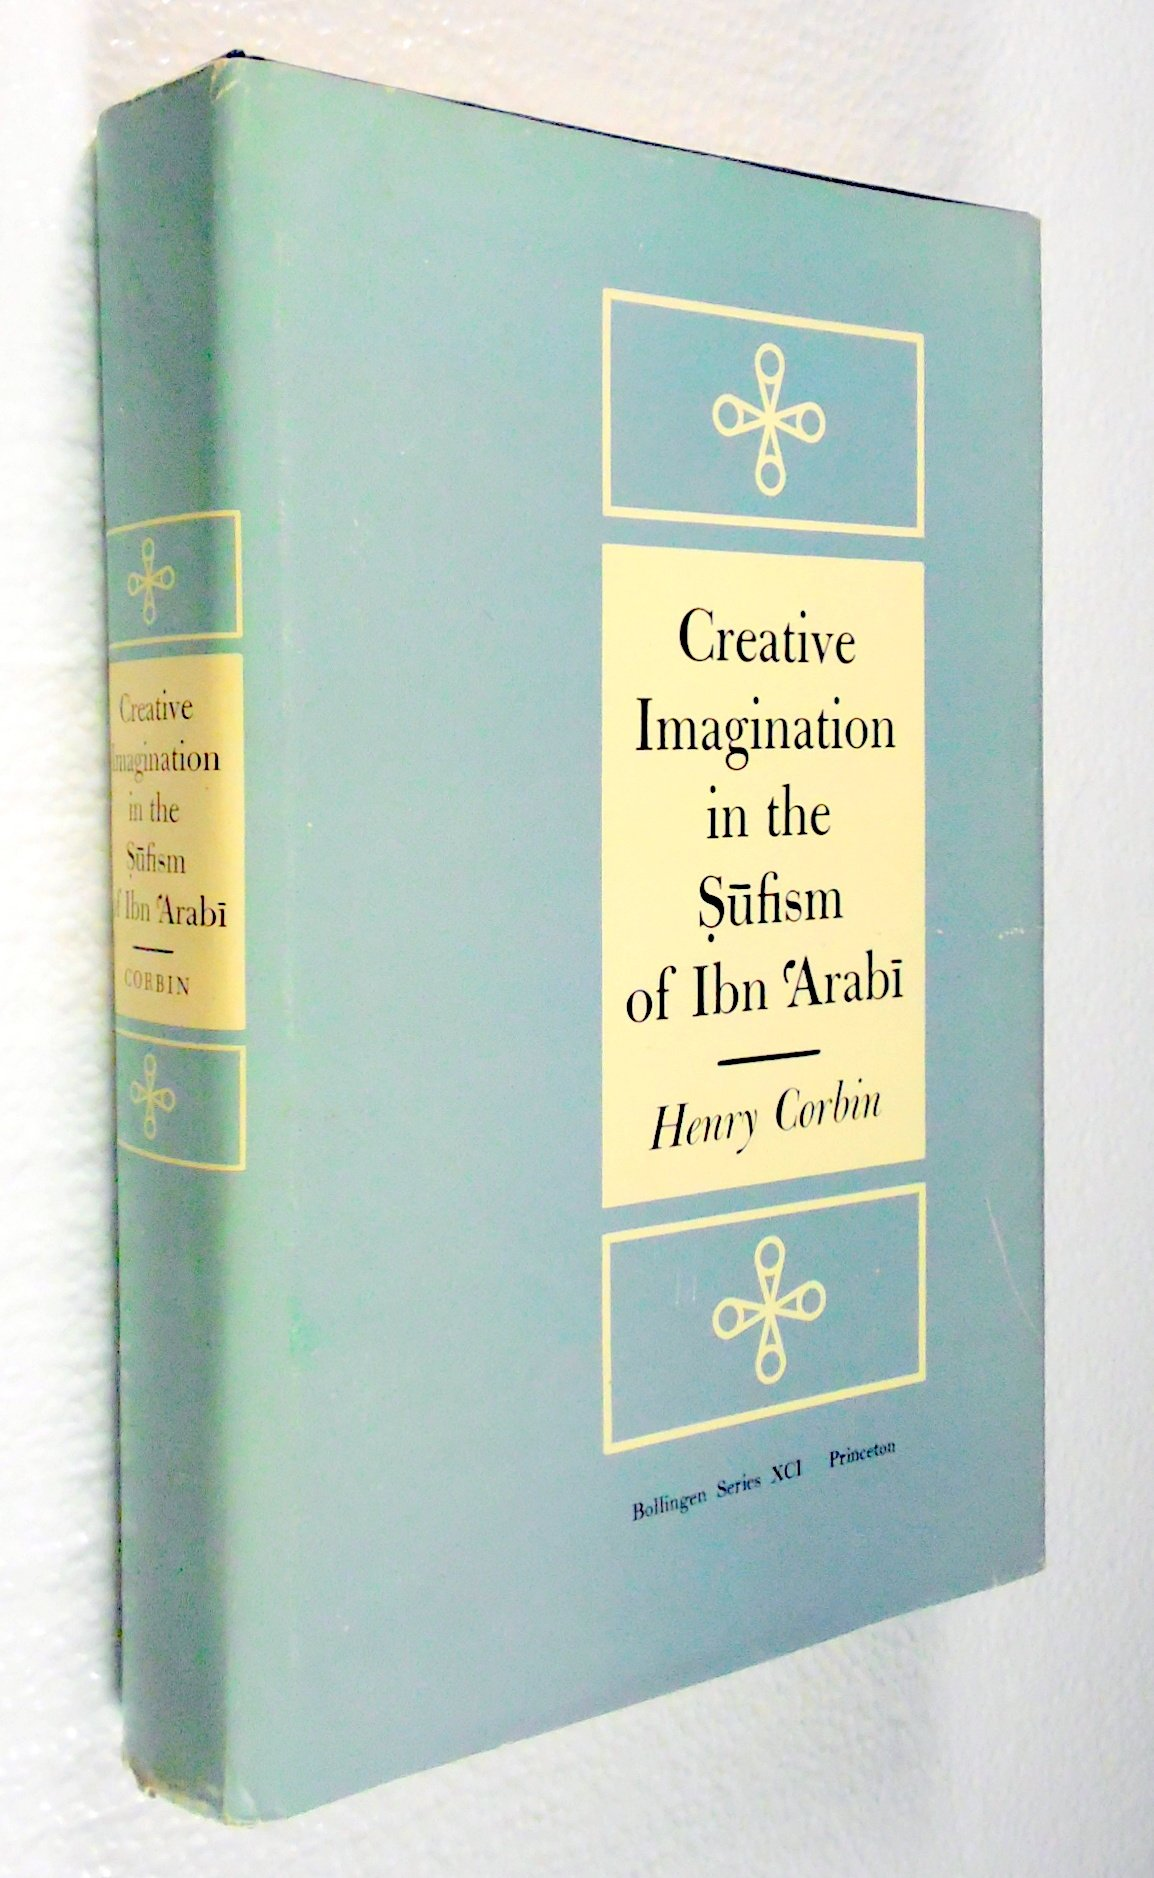 Creative Imagination in the Sufism of Ibn Arabi (Bollingen Series 91), Henry Corbin